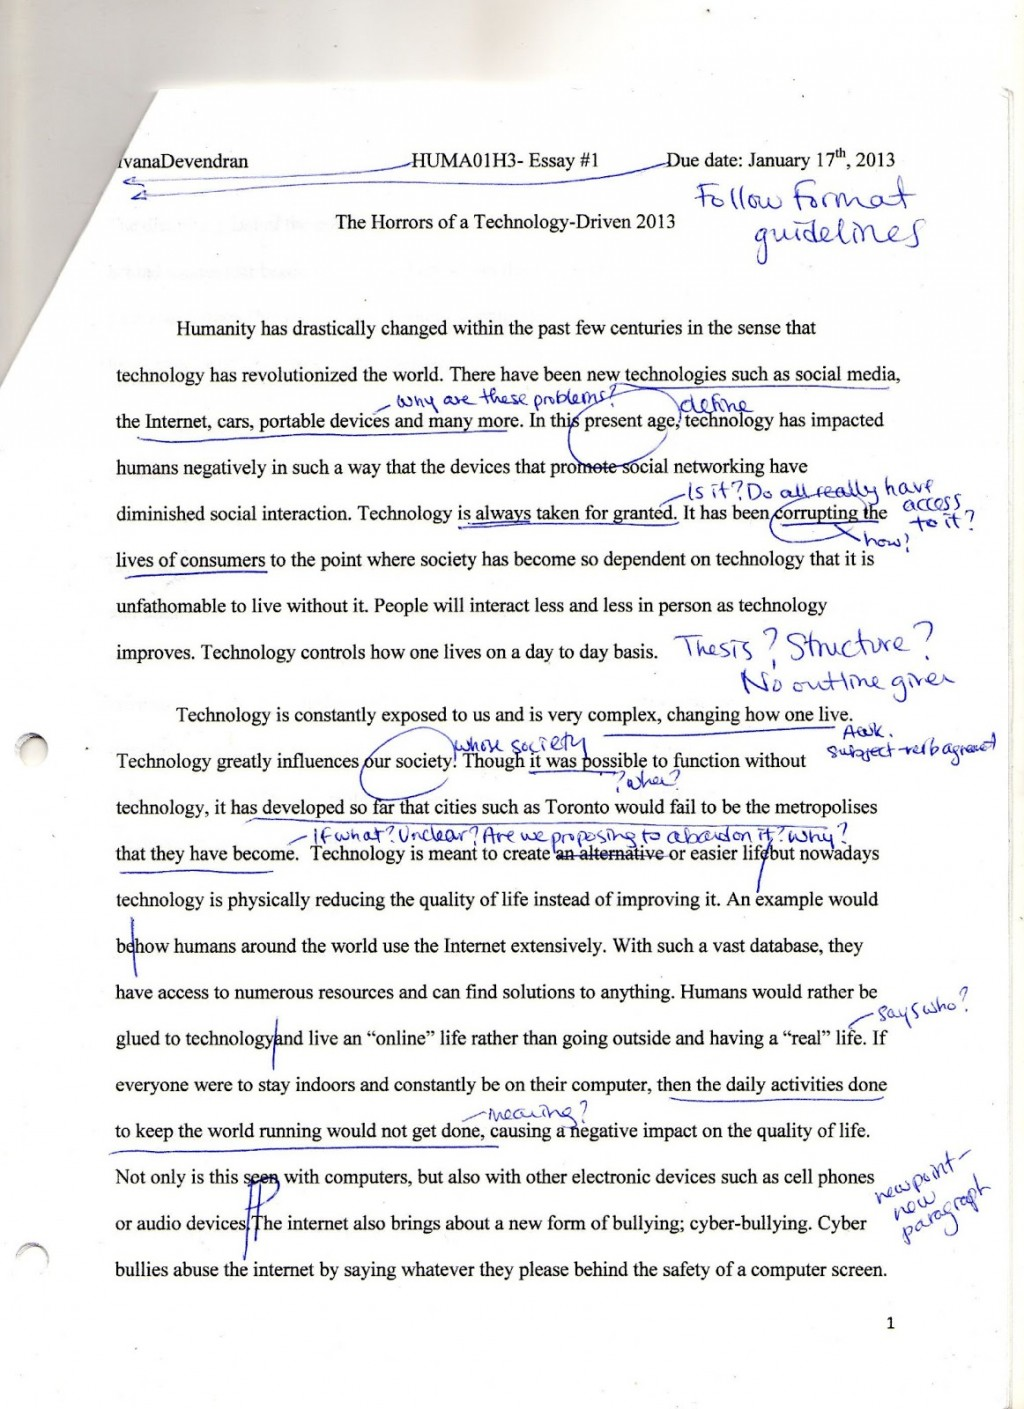 011 Img008 Essay Example How Technology Has Changed Our Awesome Lives Pdf On For The Worst Large